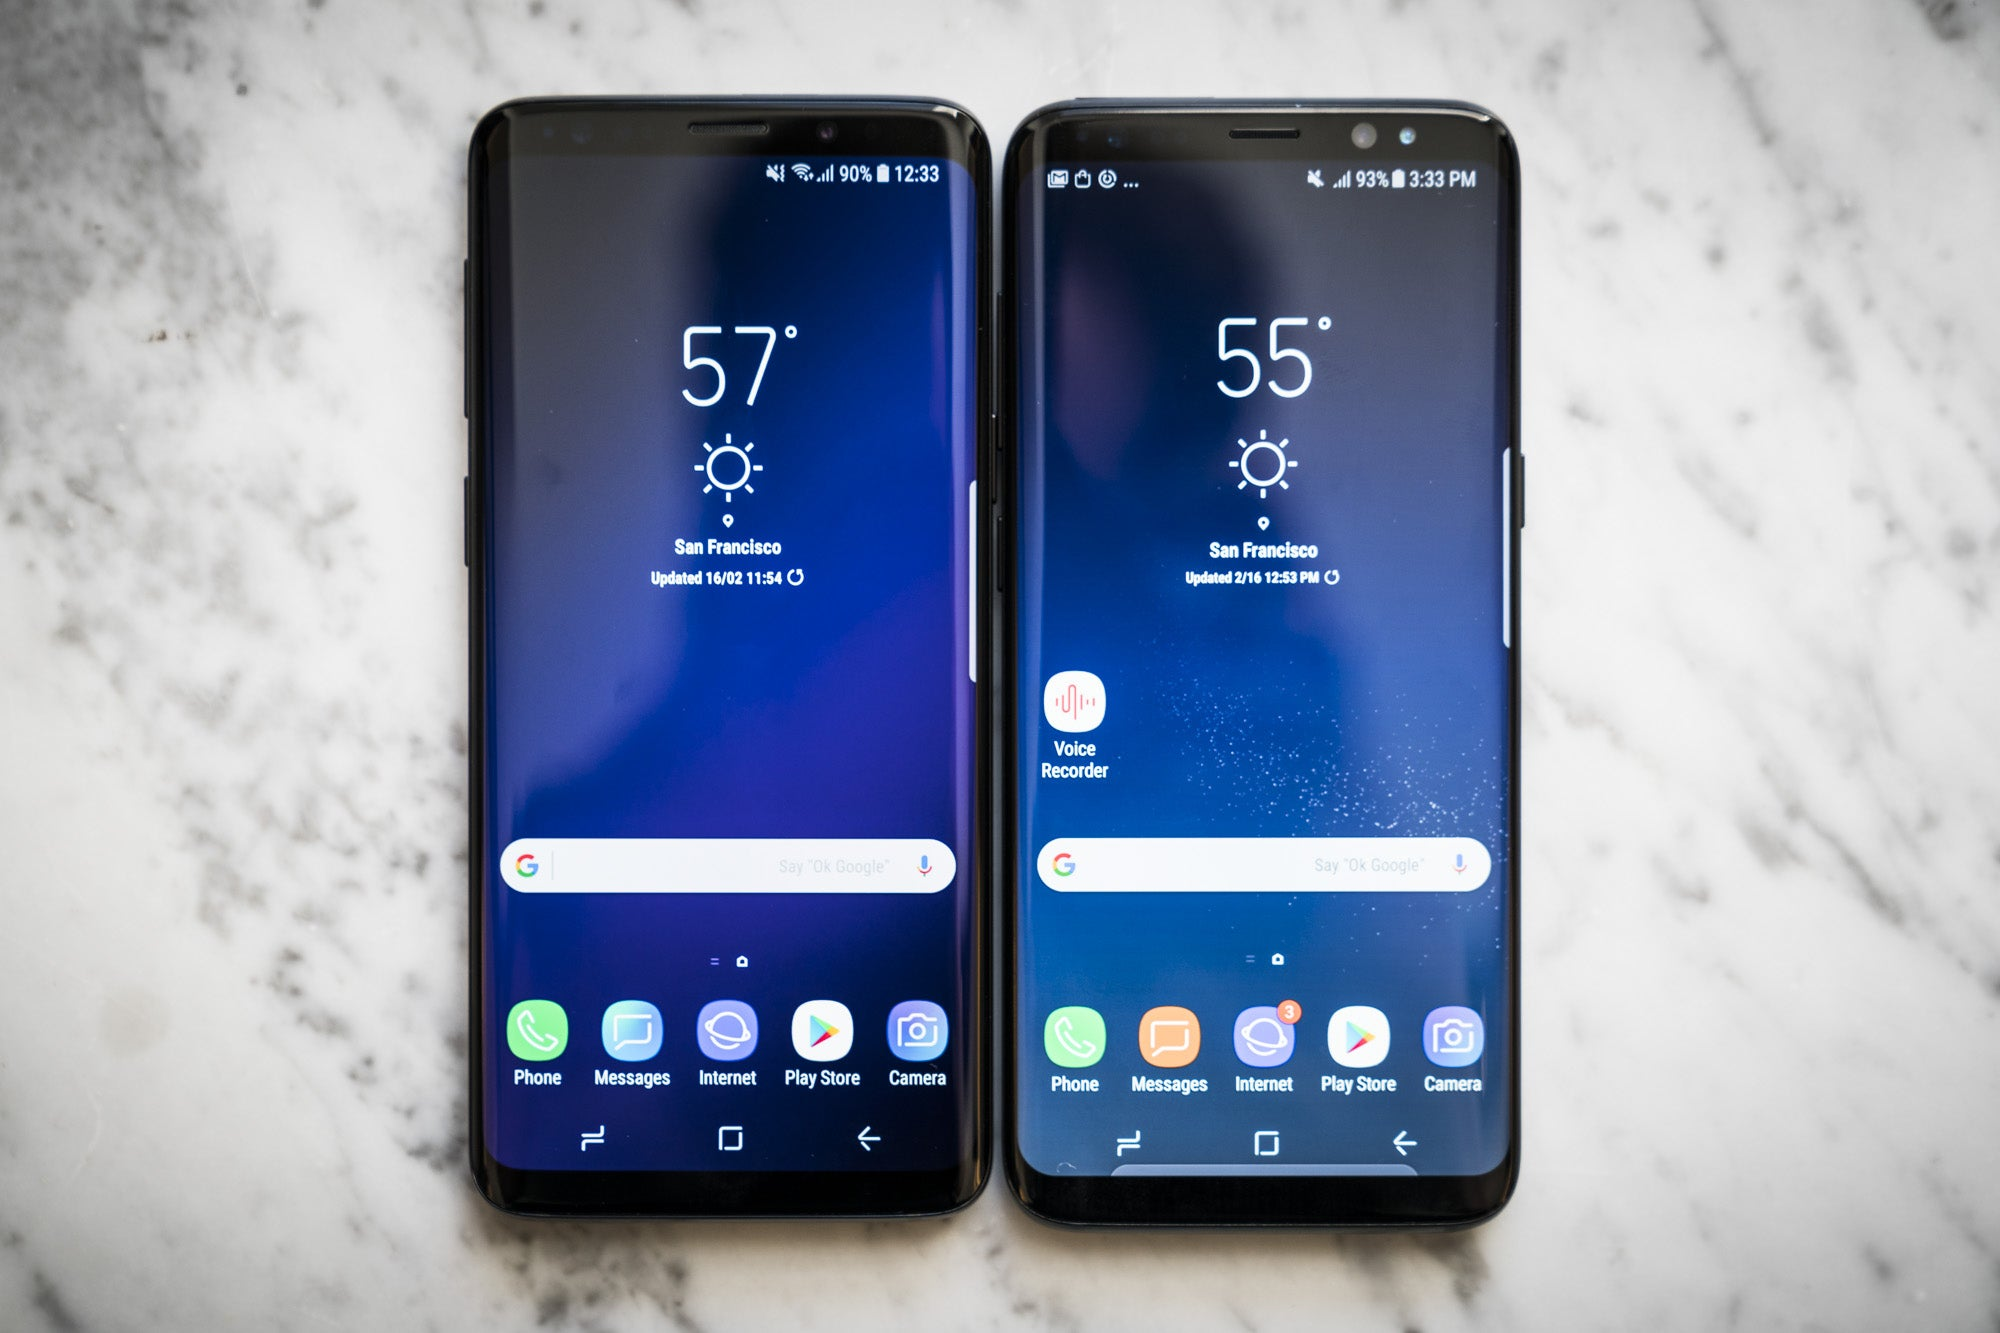 Iphone X Dimensions For Wallpaper 18 9 Galaxy S9 Hands On Testing Ar Emojis And The Dual